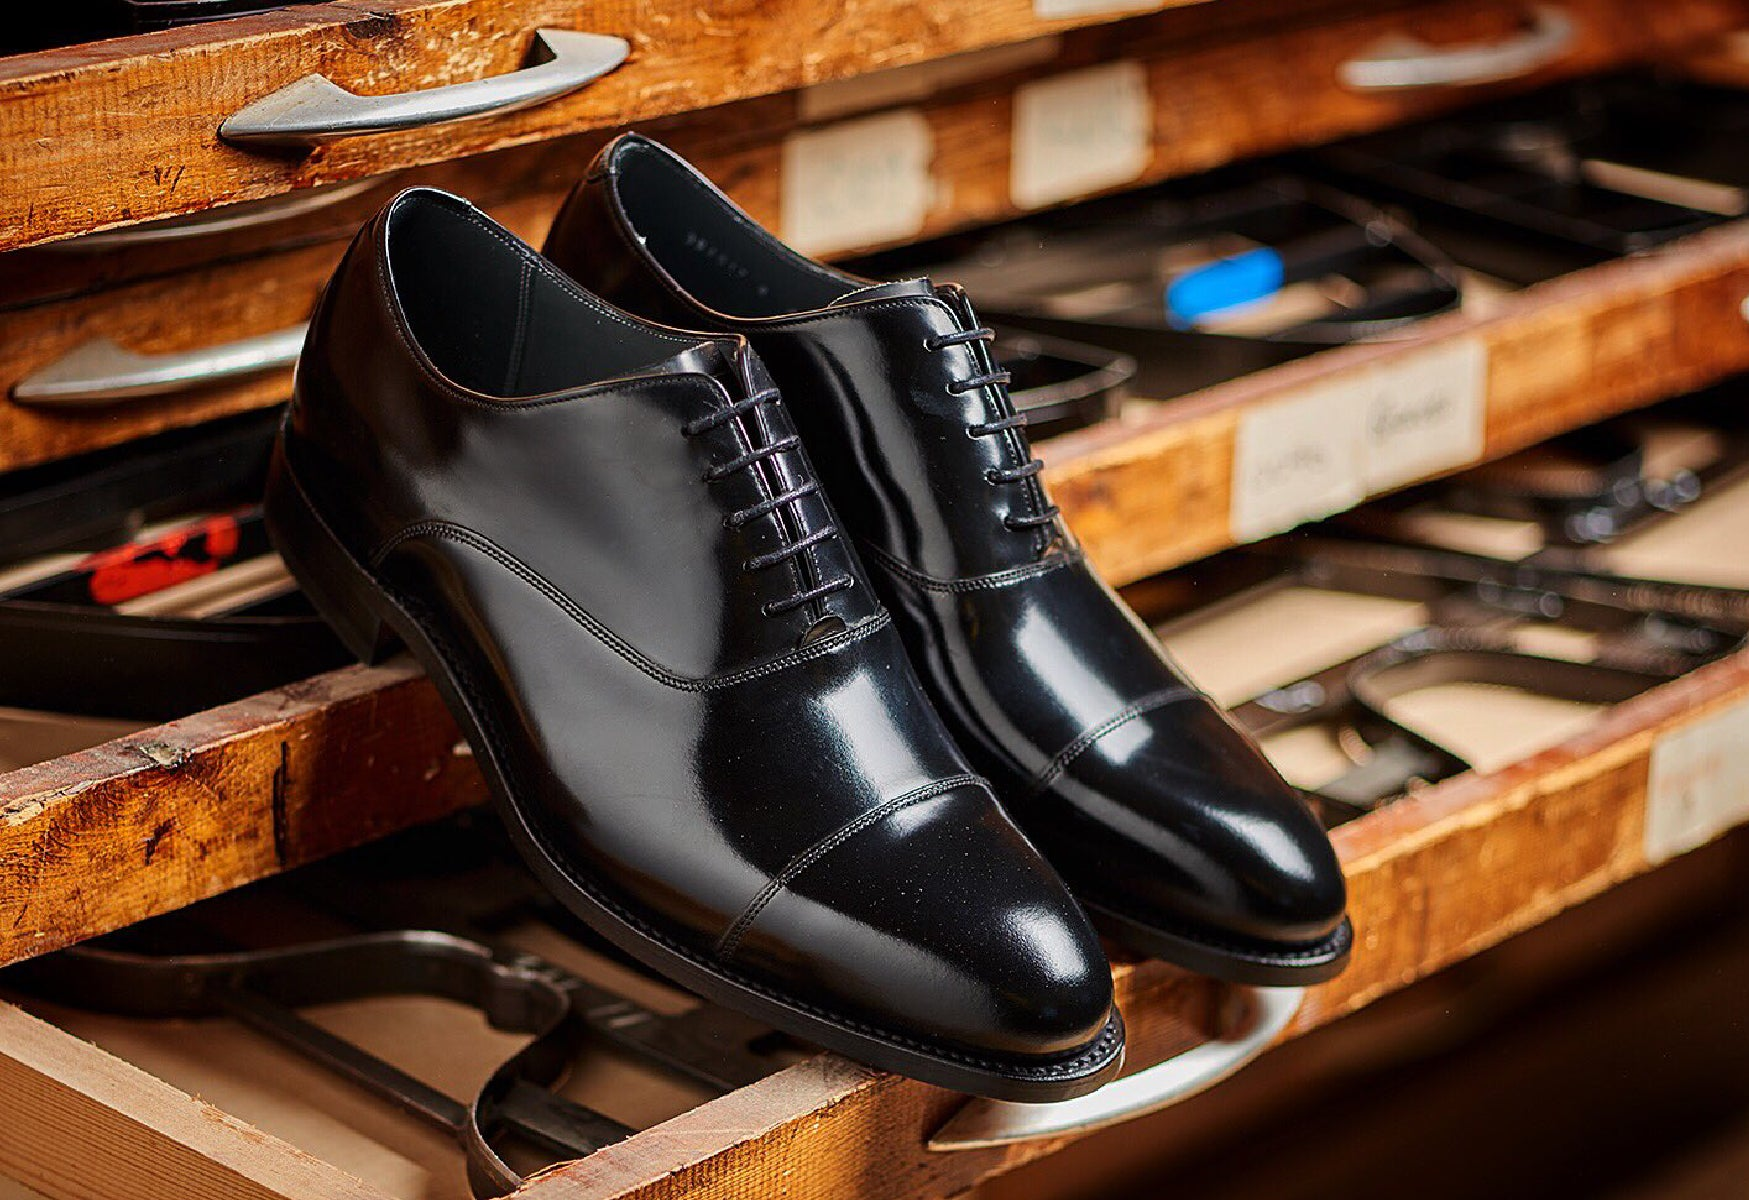 Winsford - Men's handmade shoe by Barker